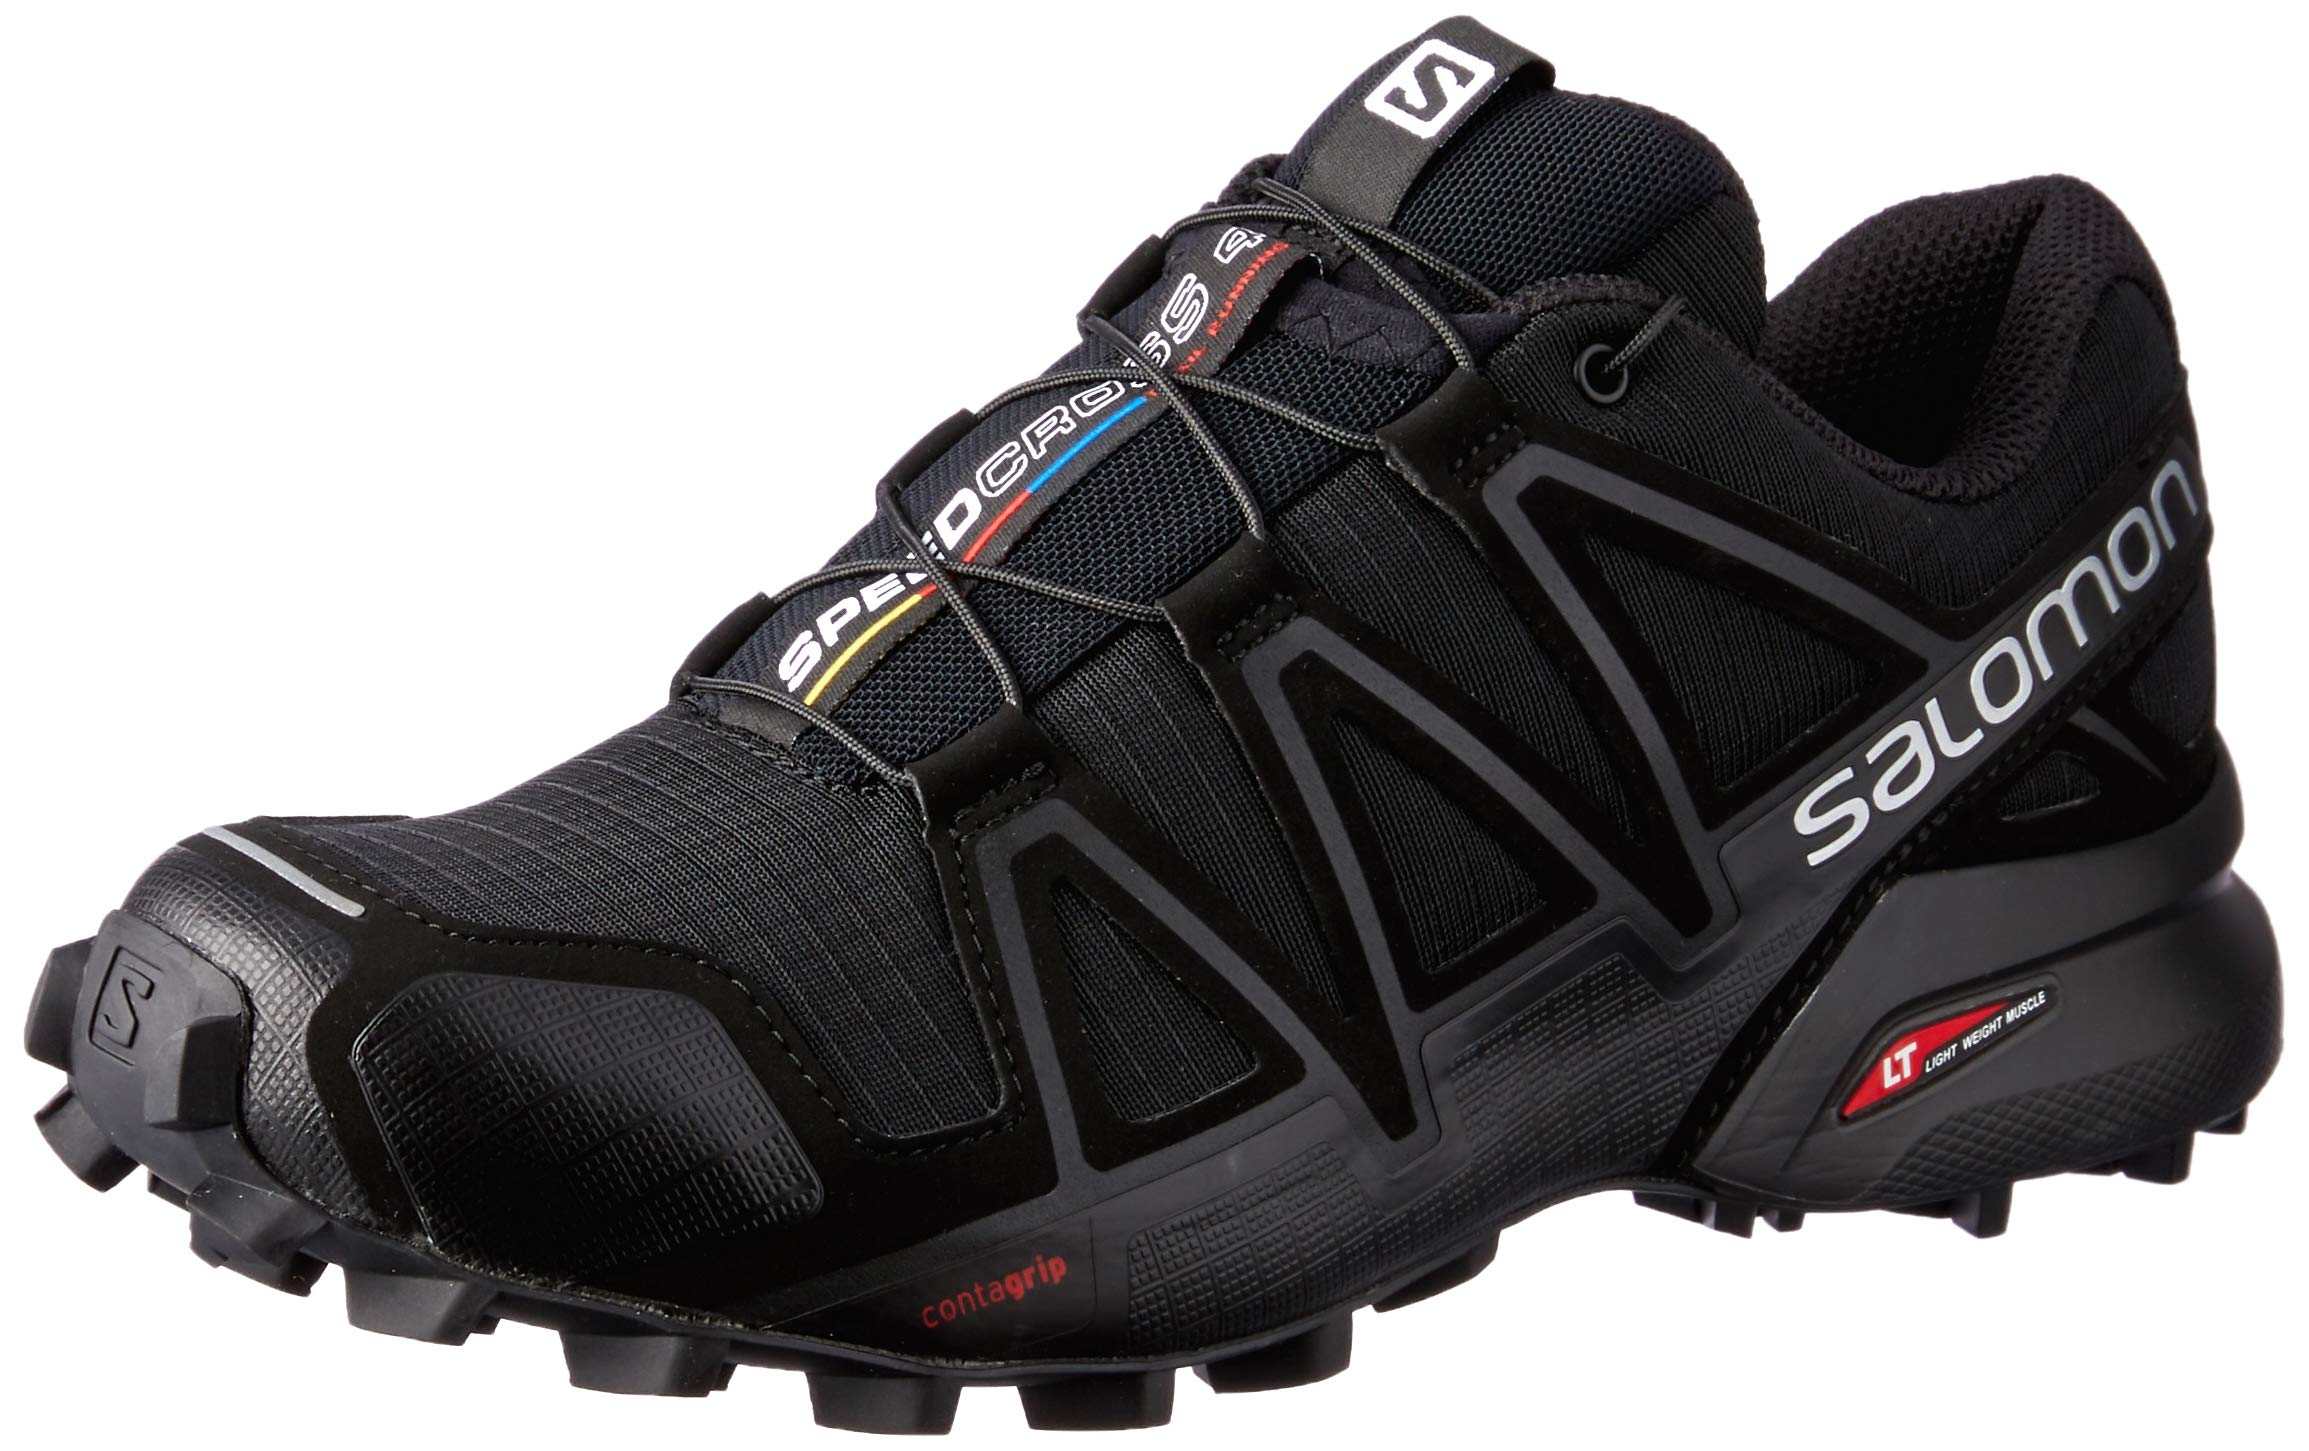 SALOMON Women's Speedcross 4 W Trail Runner, Black Metallic, 6.5 M US by SALOMON